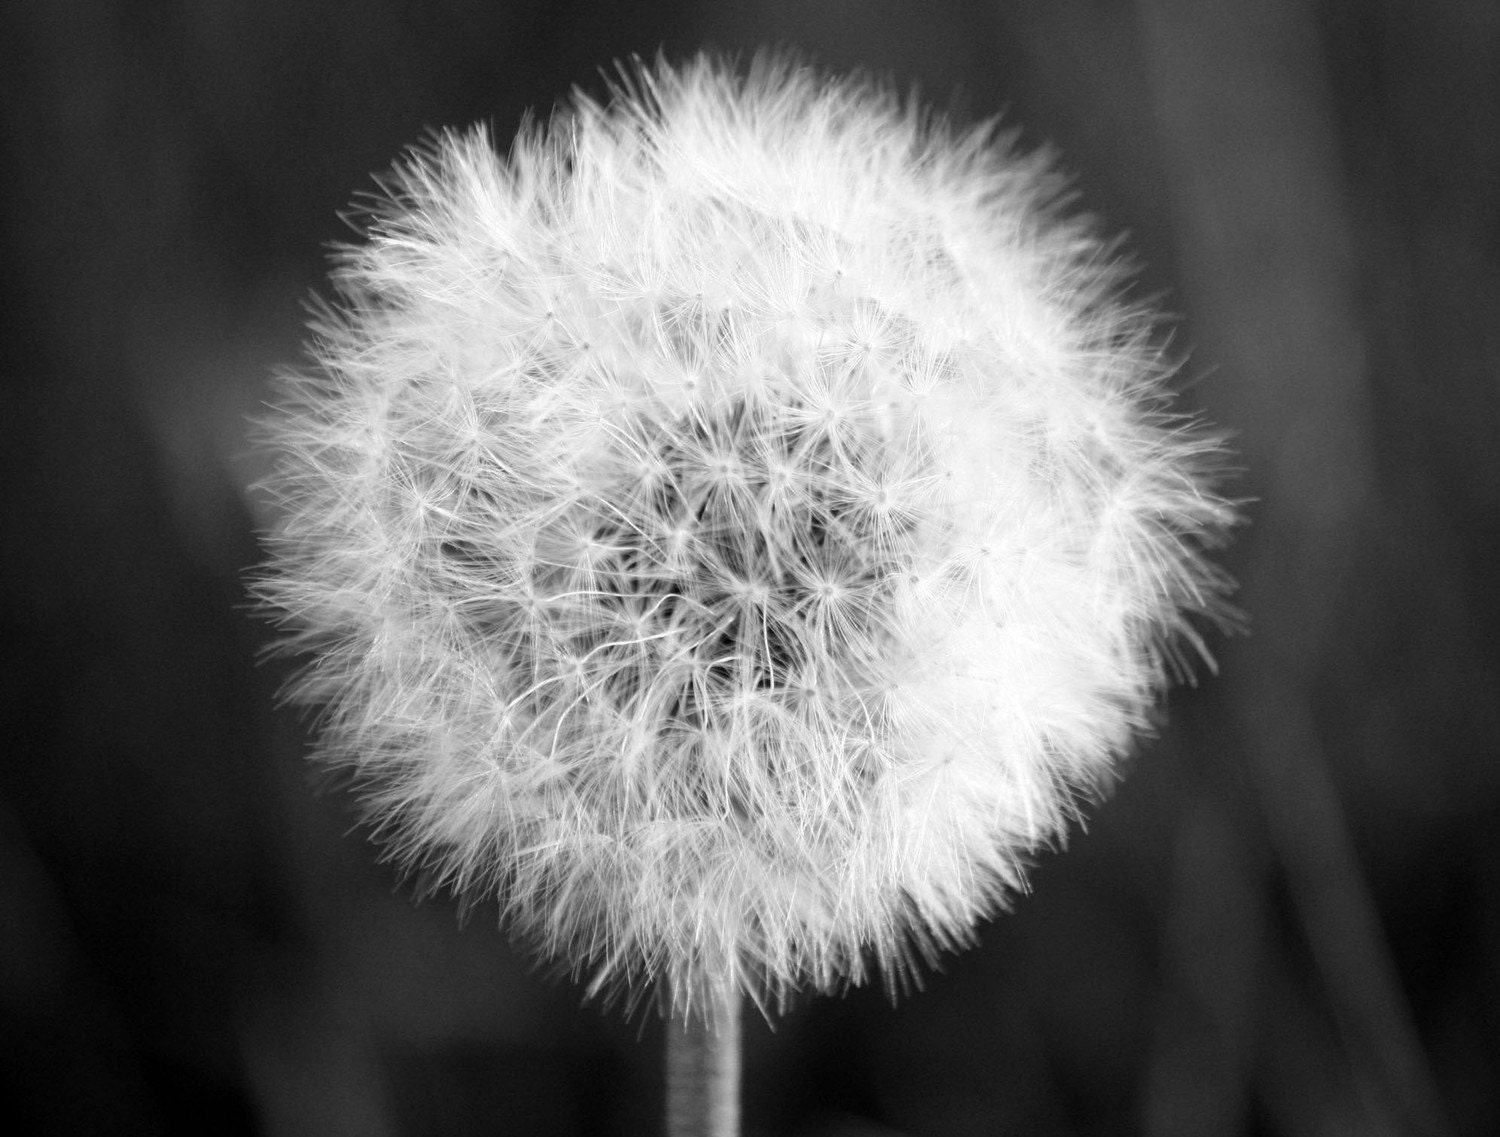 Hanging On - Fine Art Photograph Black and White Nature Flower Dandelion - 5x7 Free Shipping - OneDecember